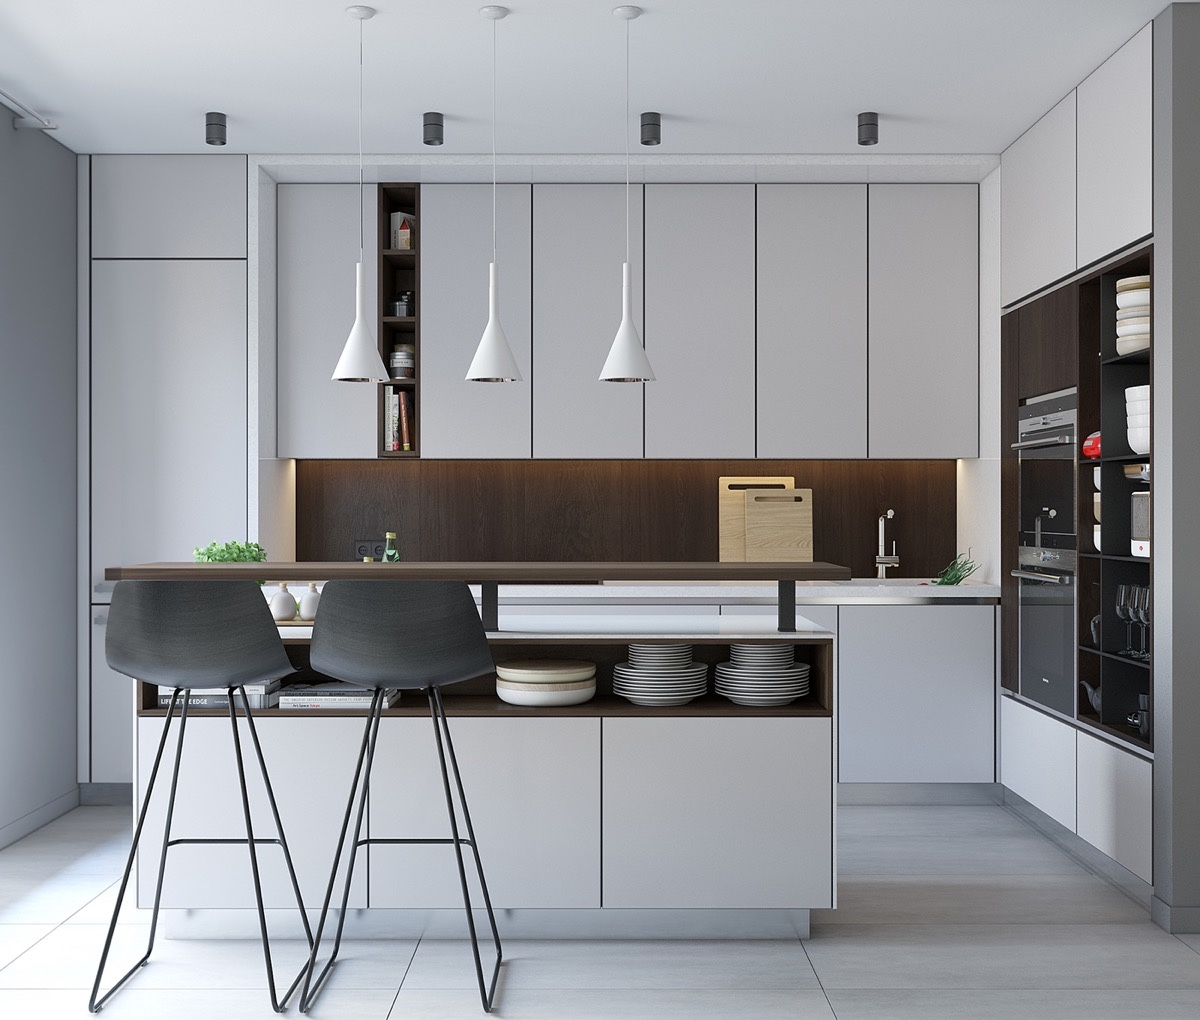 Minimalist Kitchen Design (8)